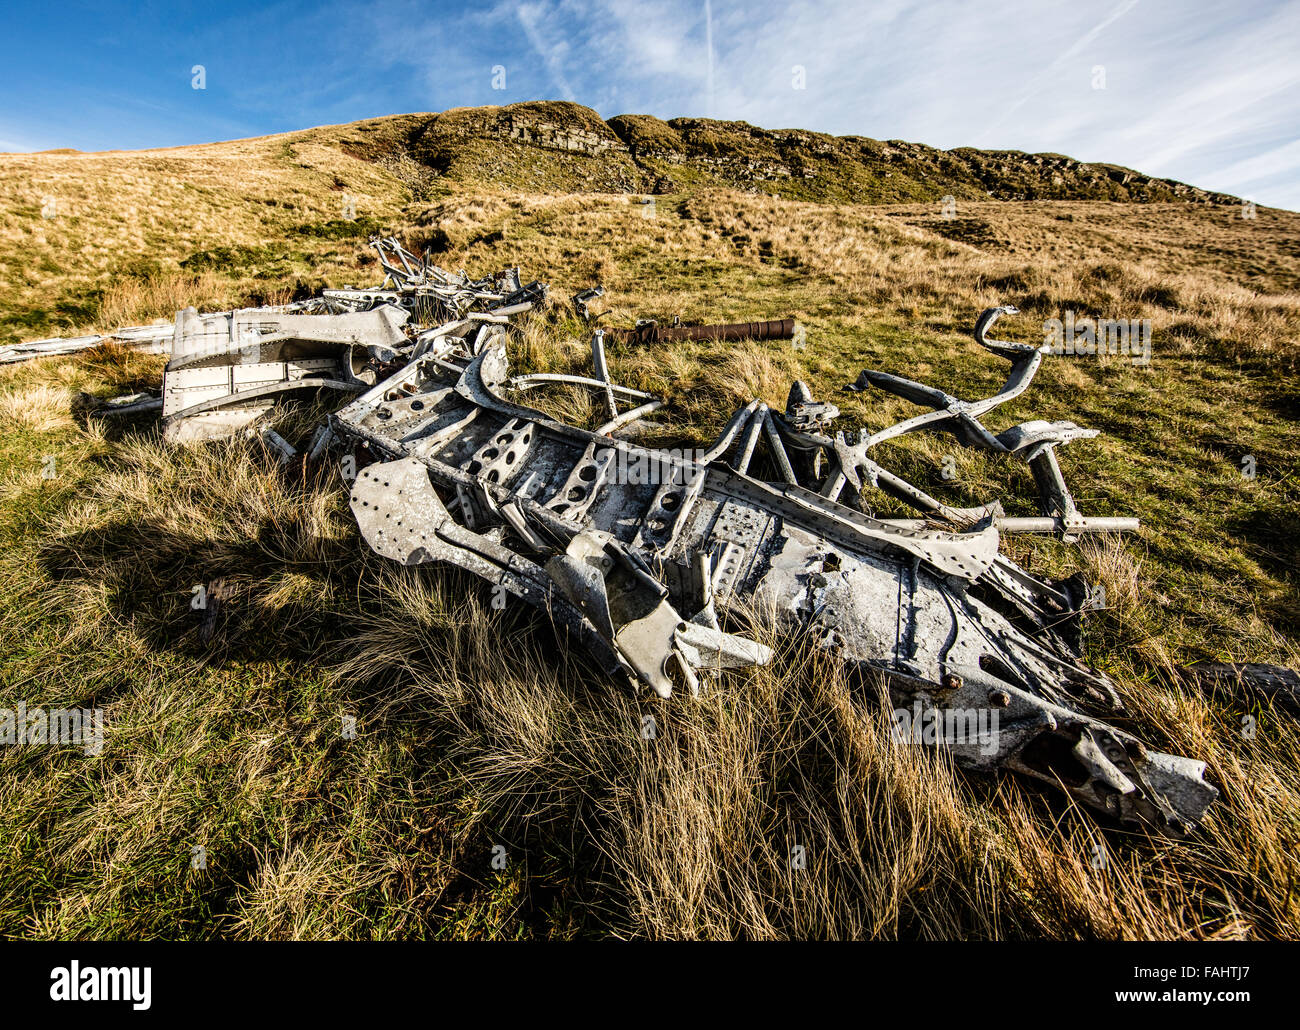 Wreckage of WWII Canadian Air Force Wellington Bomber R 1465 at Waun Rydd in the Brecon Beacons South Wales UK - Stock Image